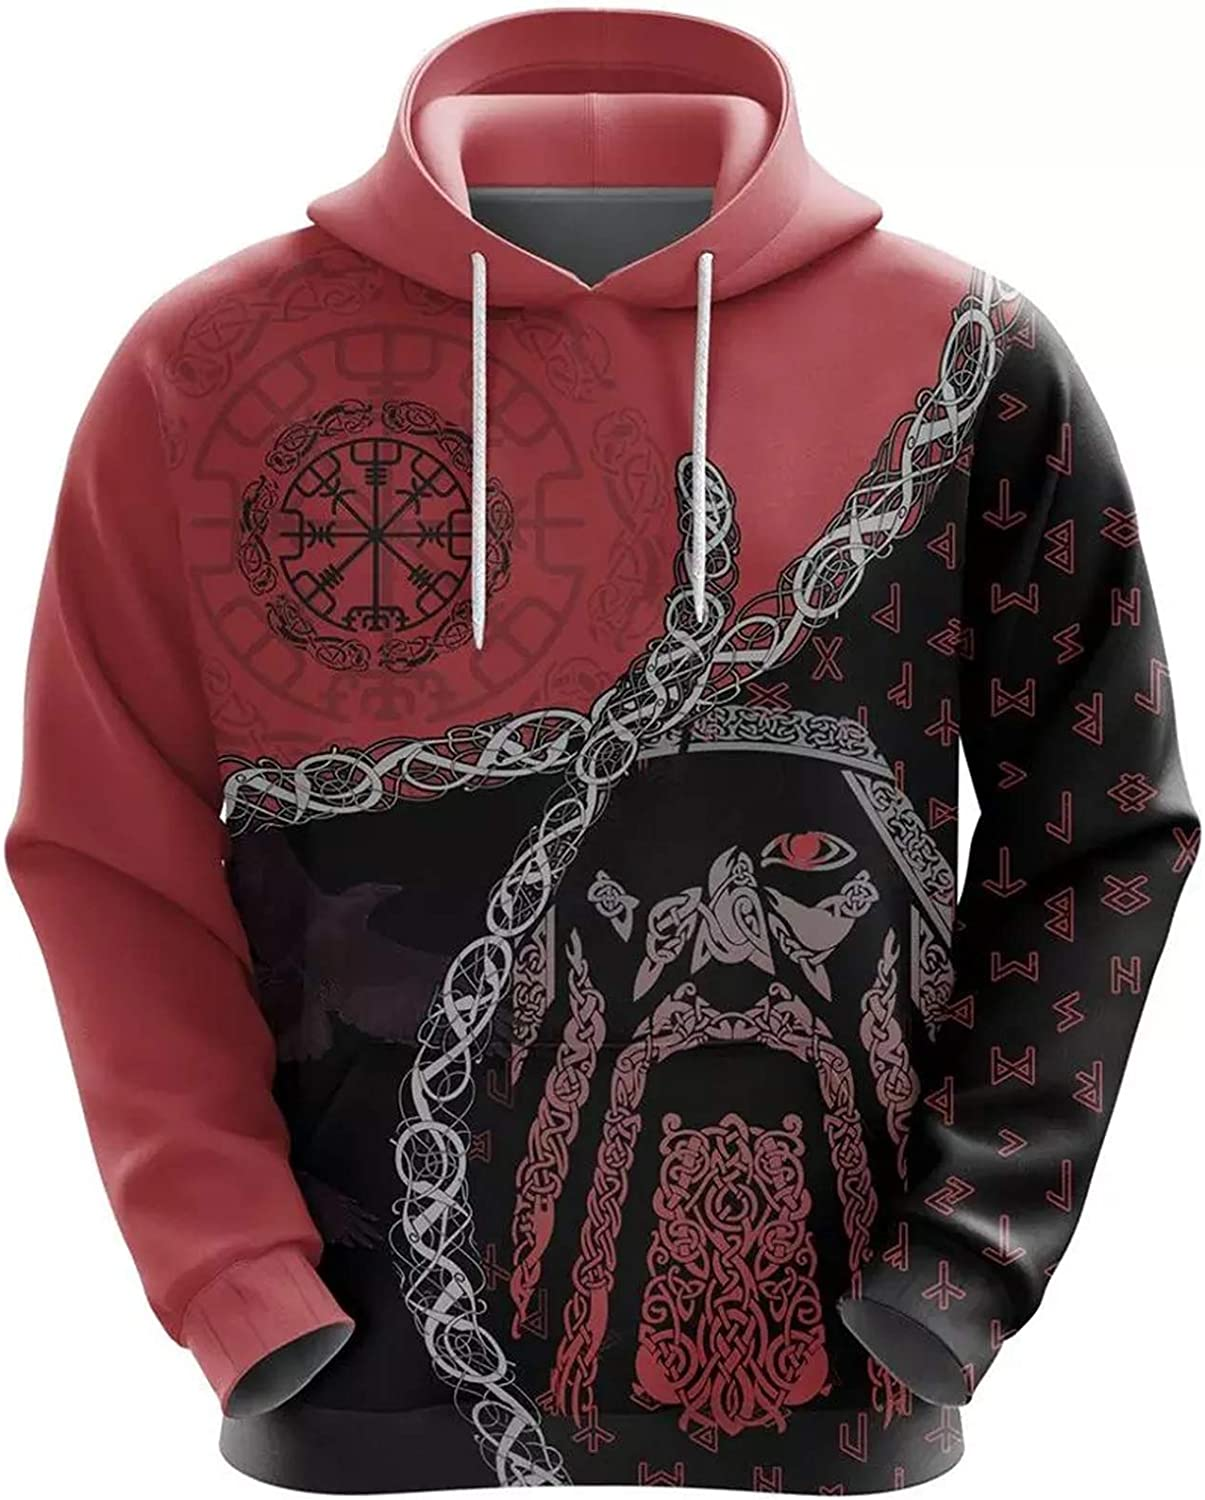 Viking Hoodies,Odin Norse Helm of Awe 3D Printed Mens Tattoo Harajuku Streetwear Pullover Unisex Casual Tracksuits